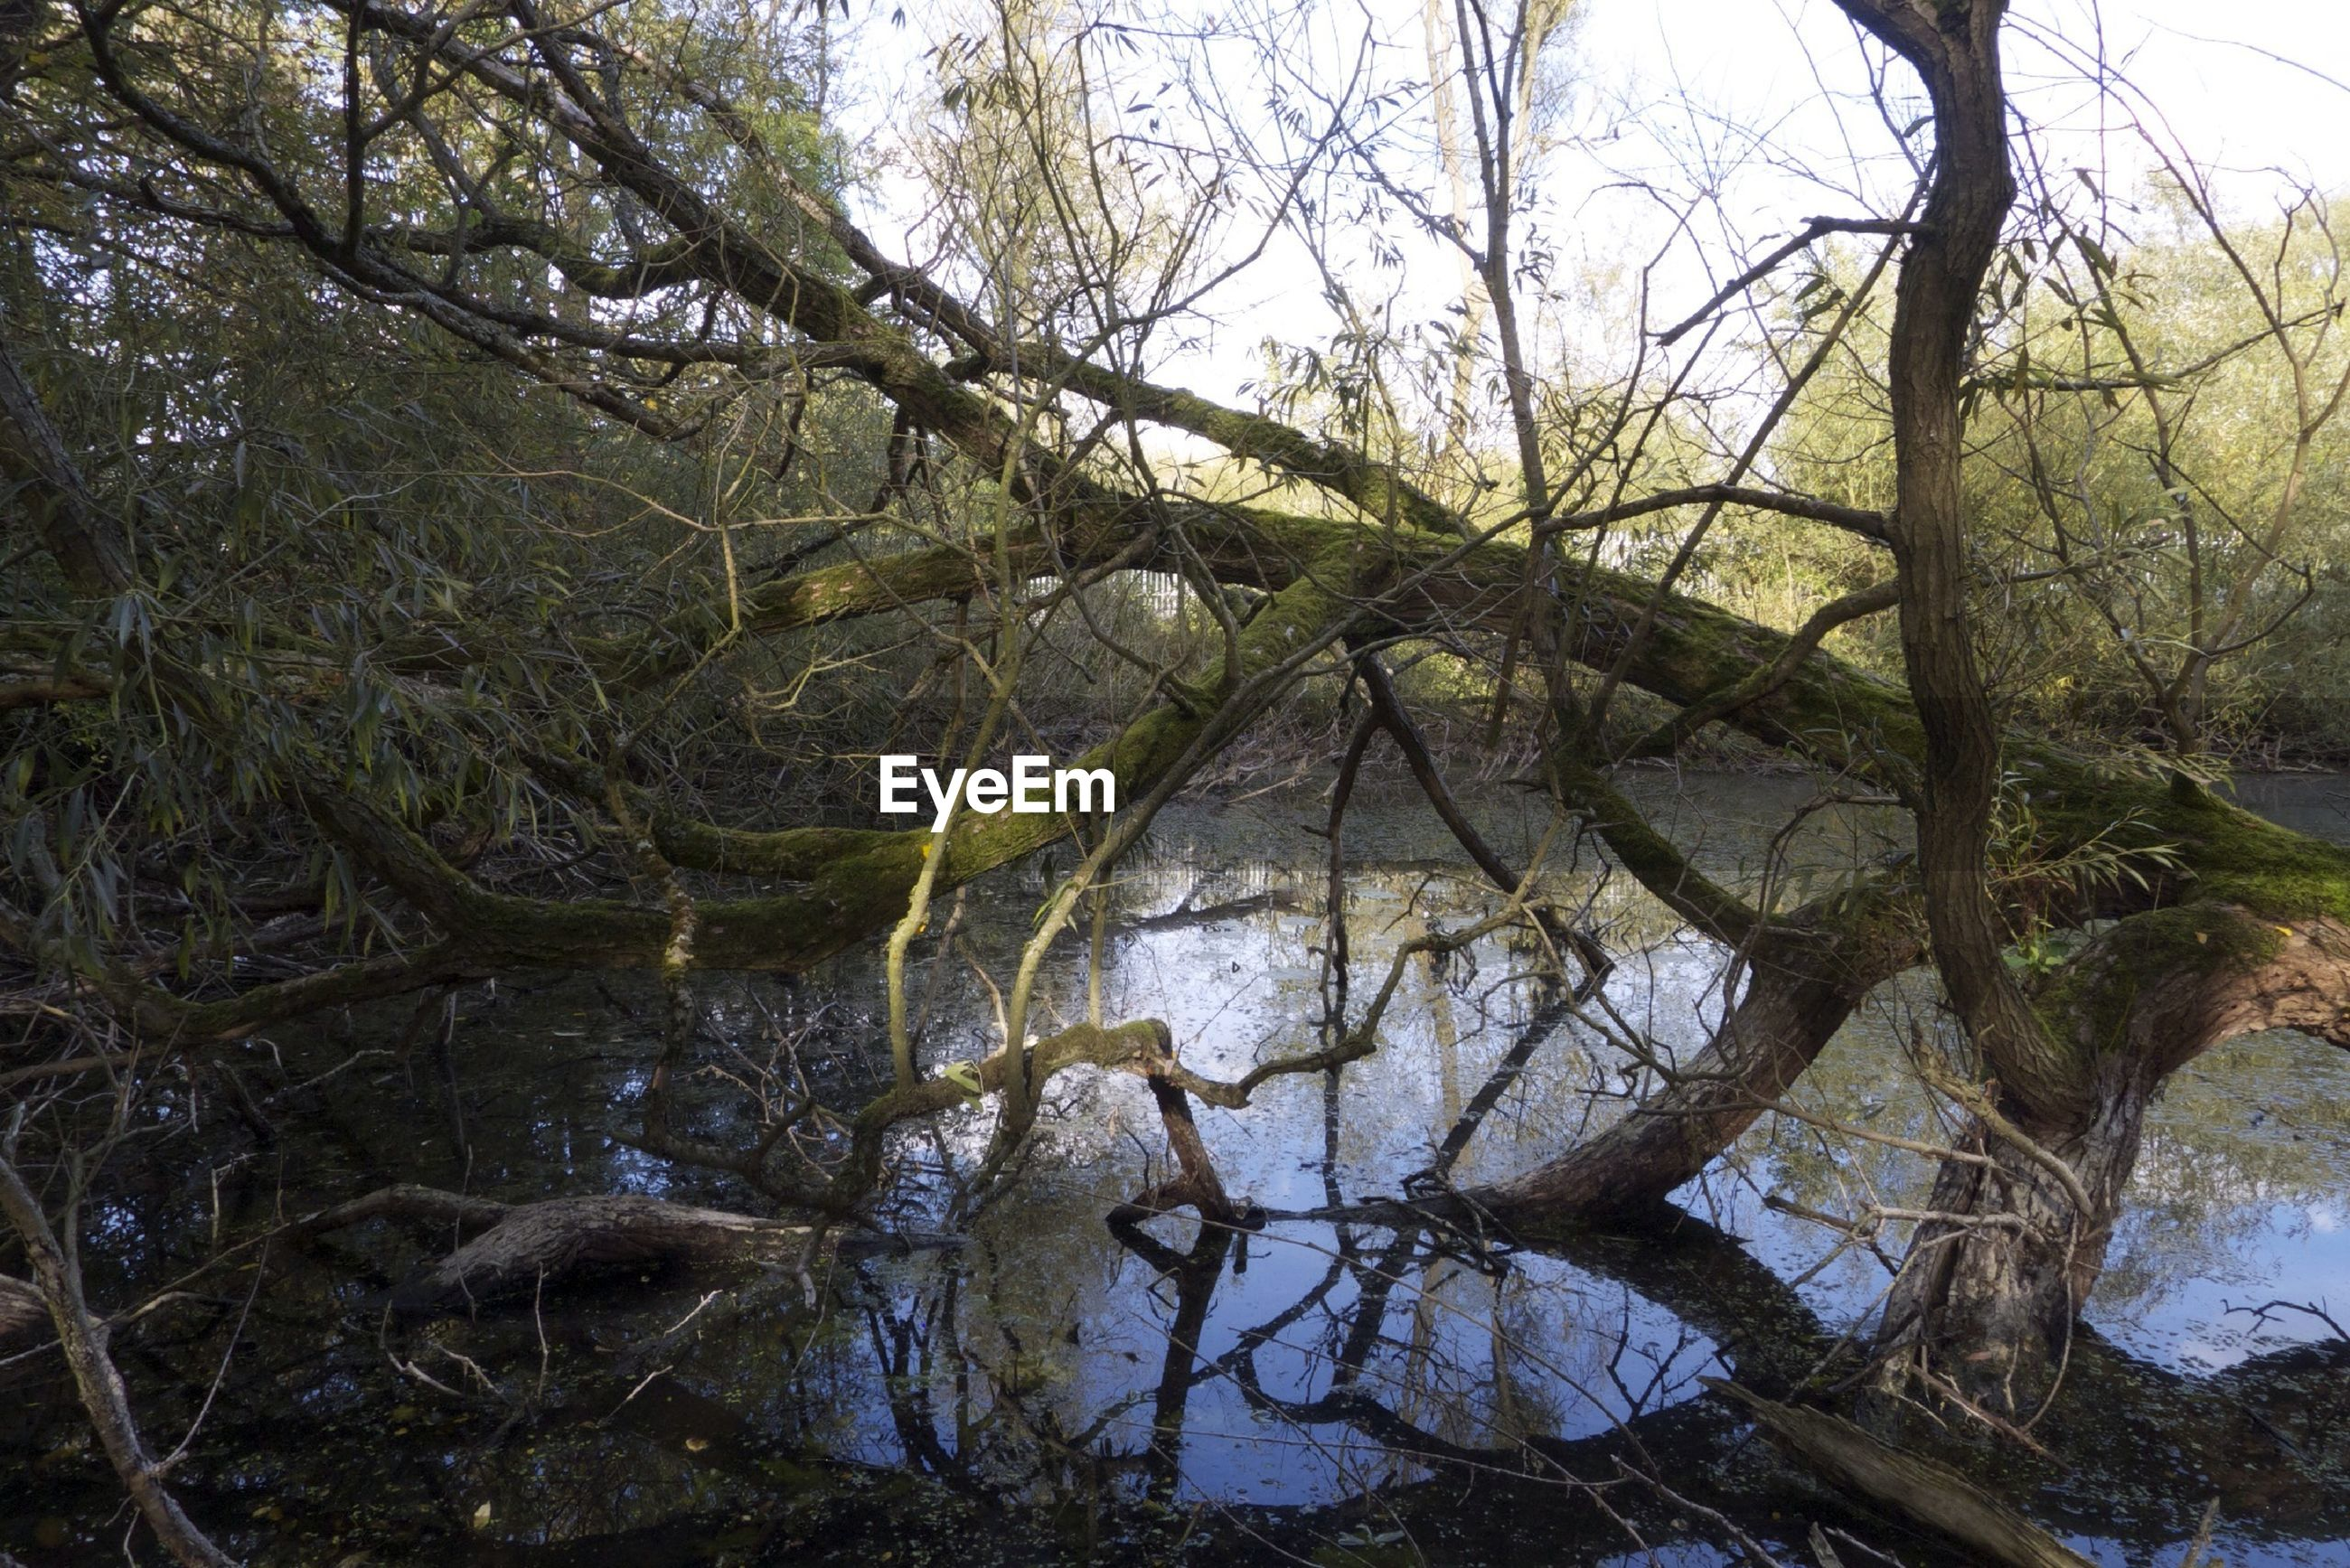 BARE TREES IN WATER